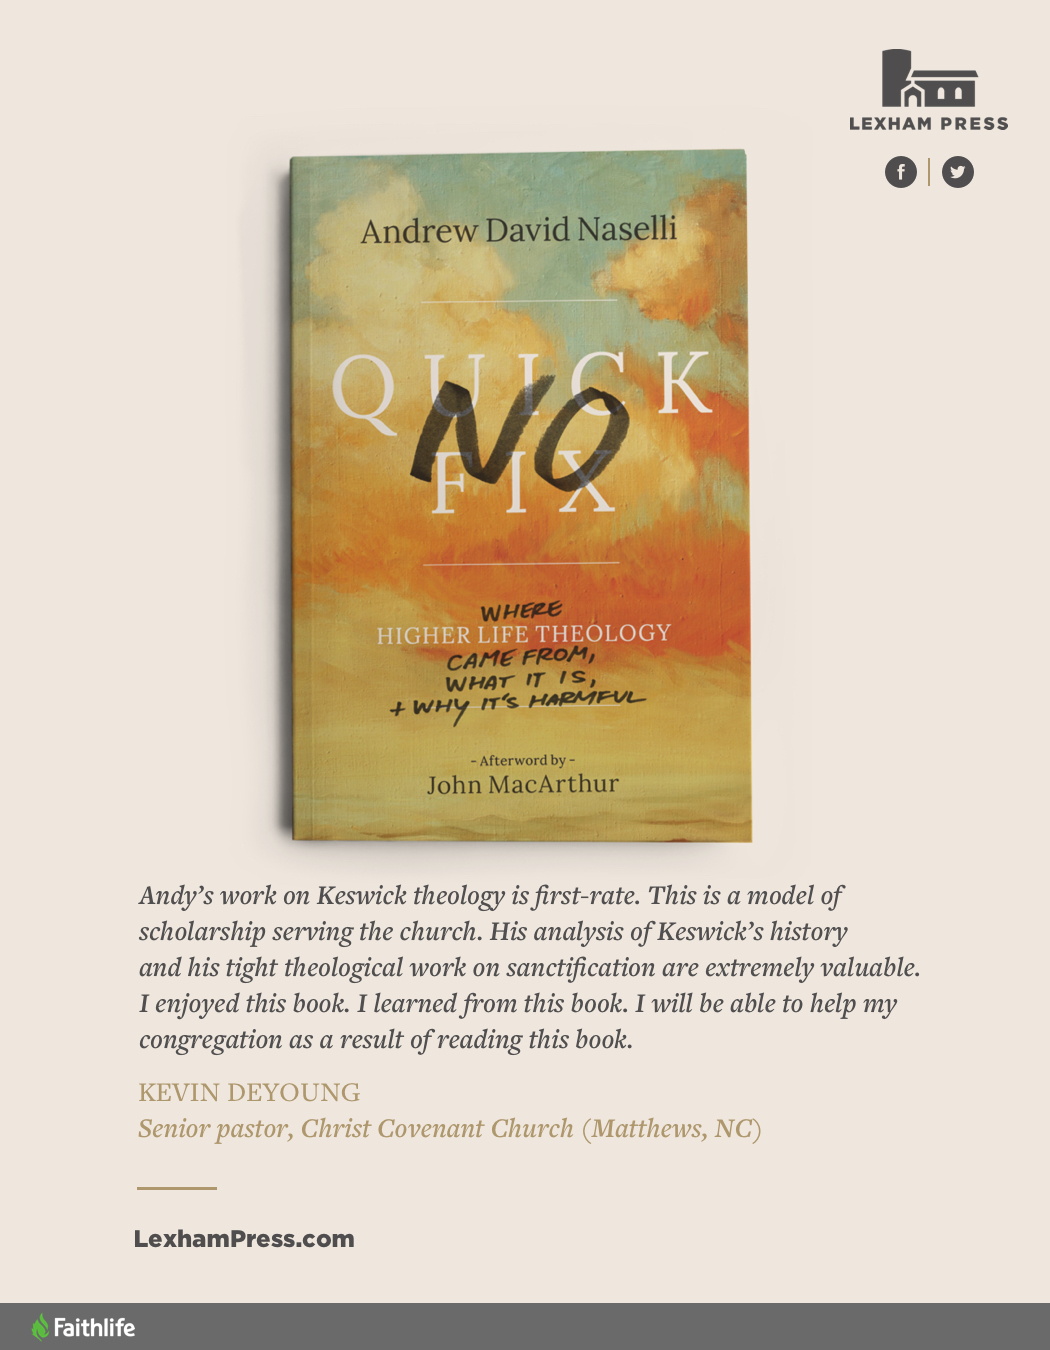 No Quick Fix: Where Higher Life Theology Came From, What It Is, and Why It's Harmful by Andy Naselli